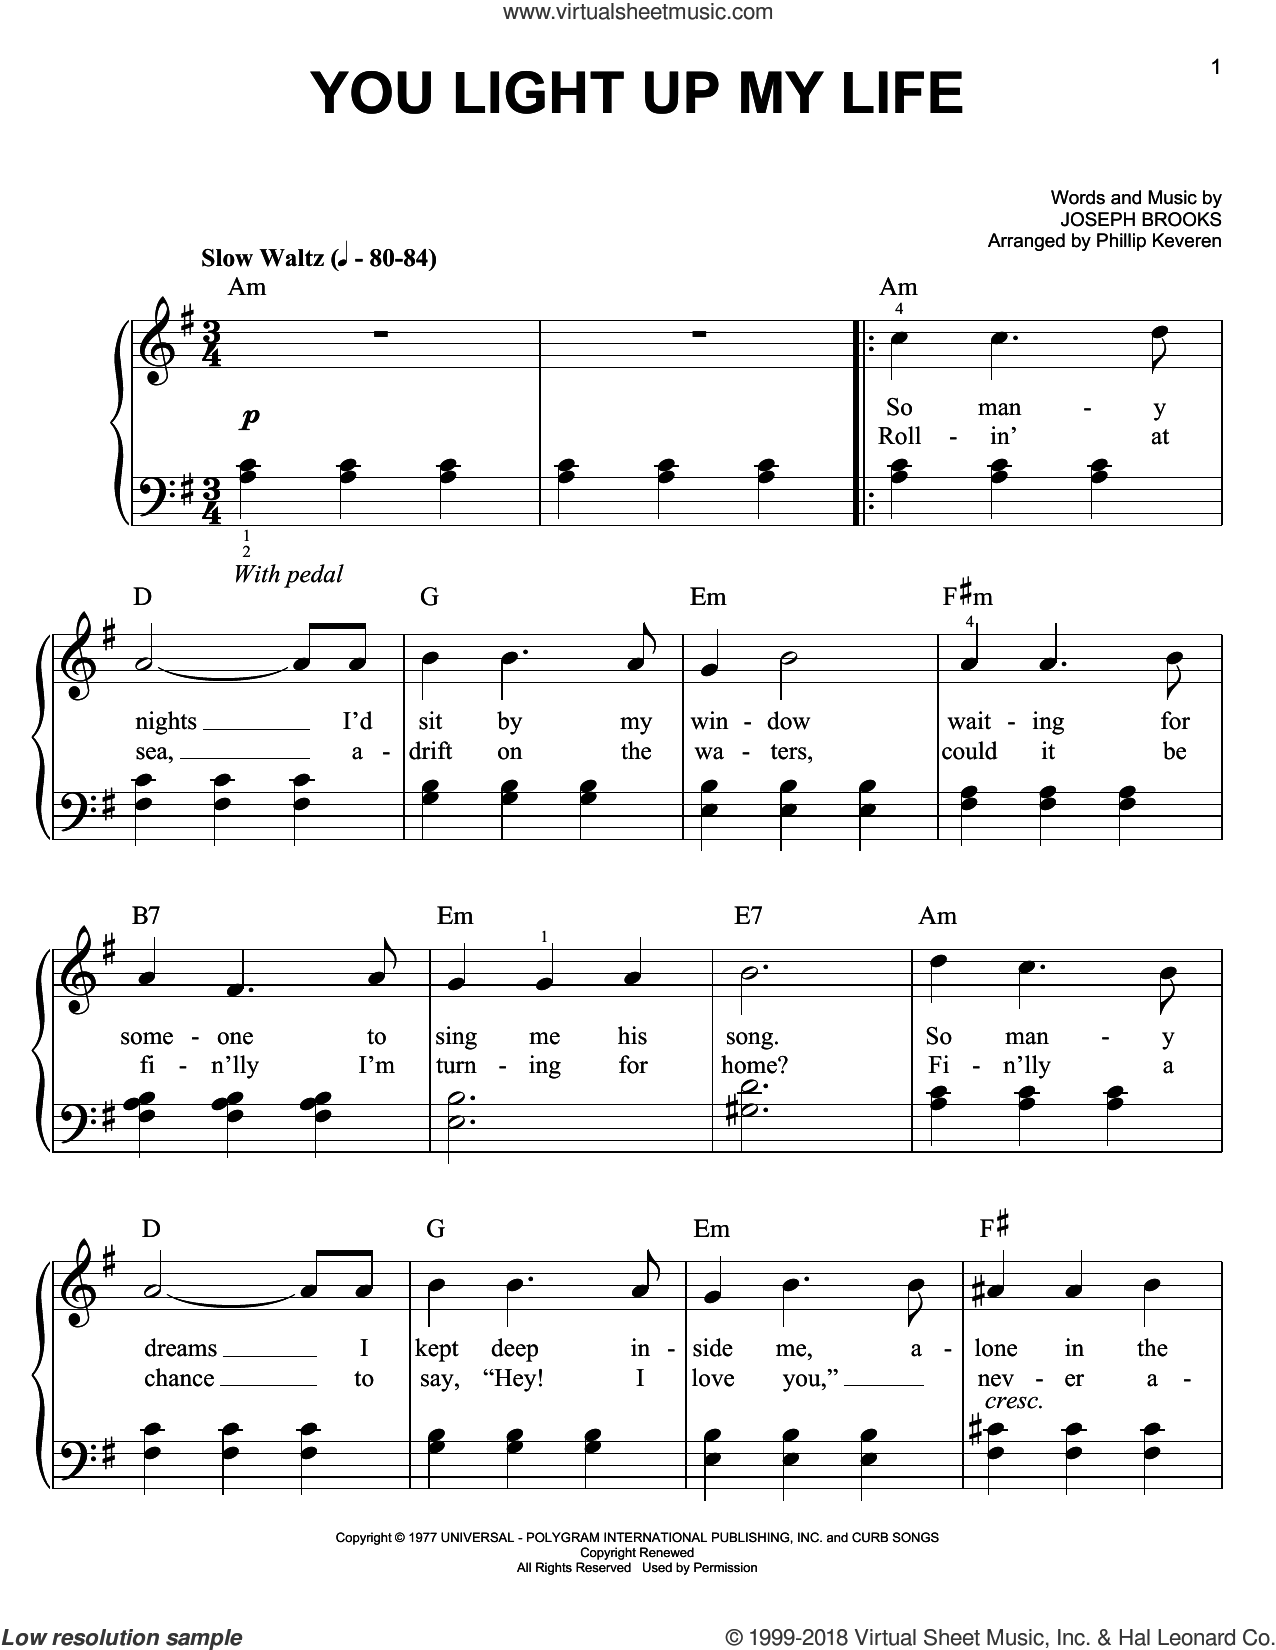 You Light Up My Life sheet music for piano solo by Phillip Keveren, Debby Boone and Joseph Brooks, easy skill level